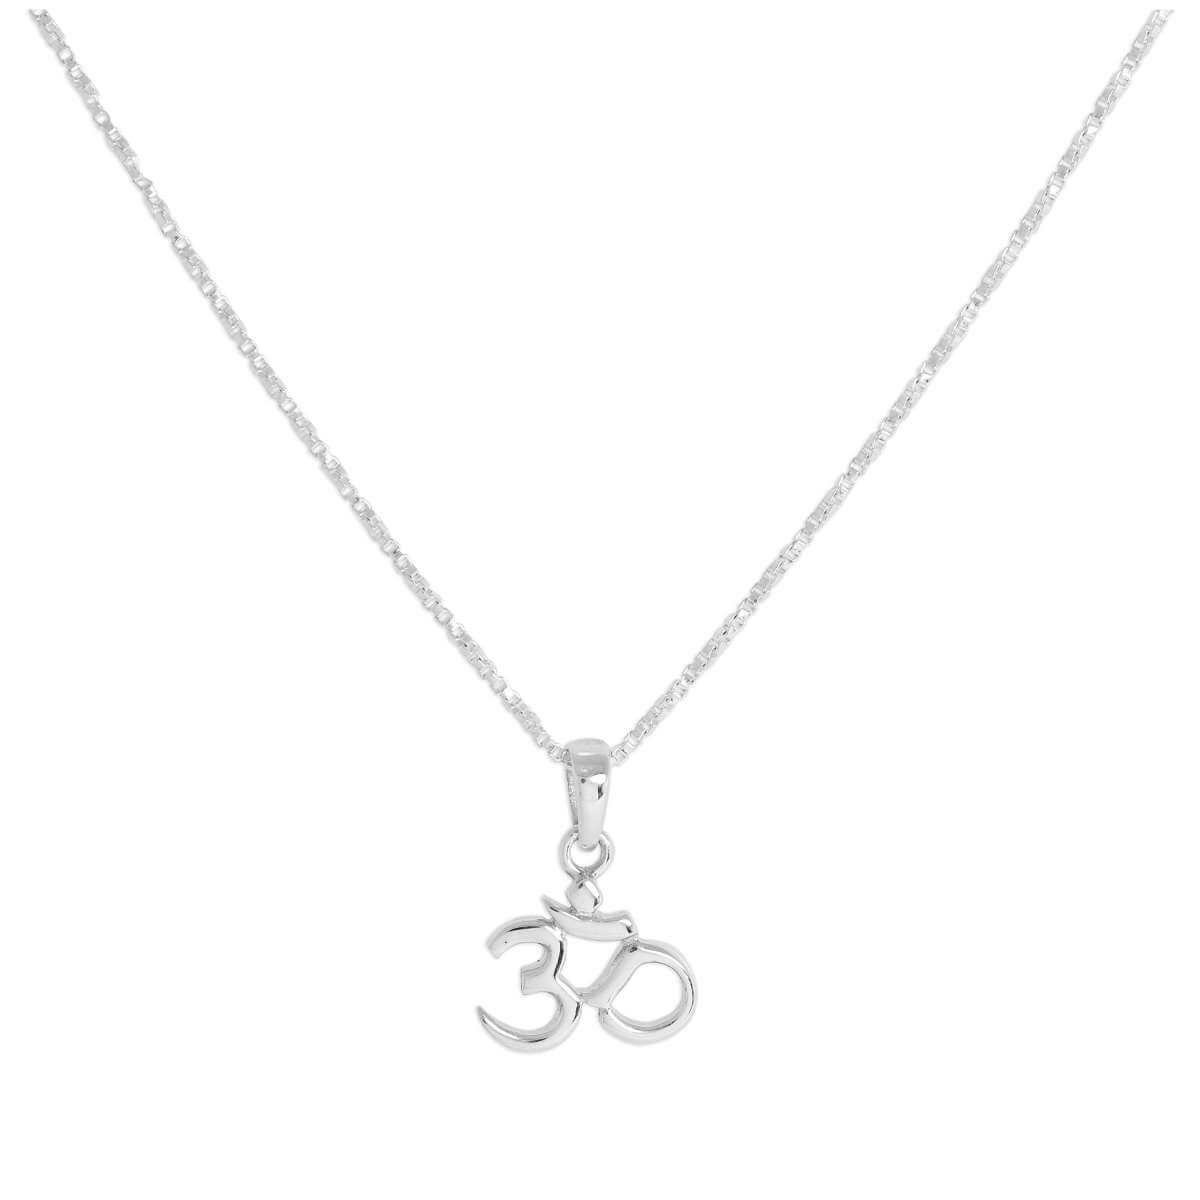 Sterling Silver Om Pendant Necklace 16 - 24 Inches